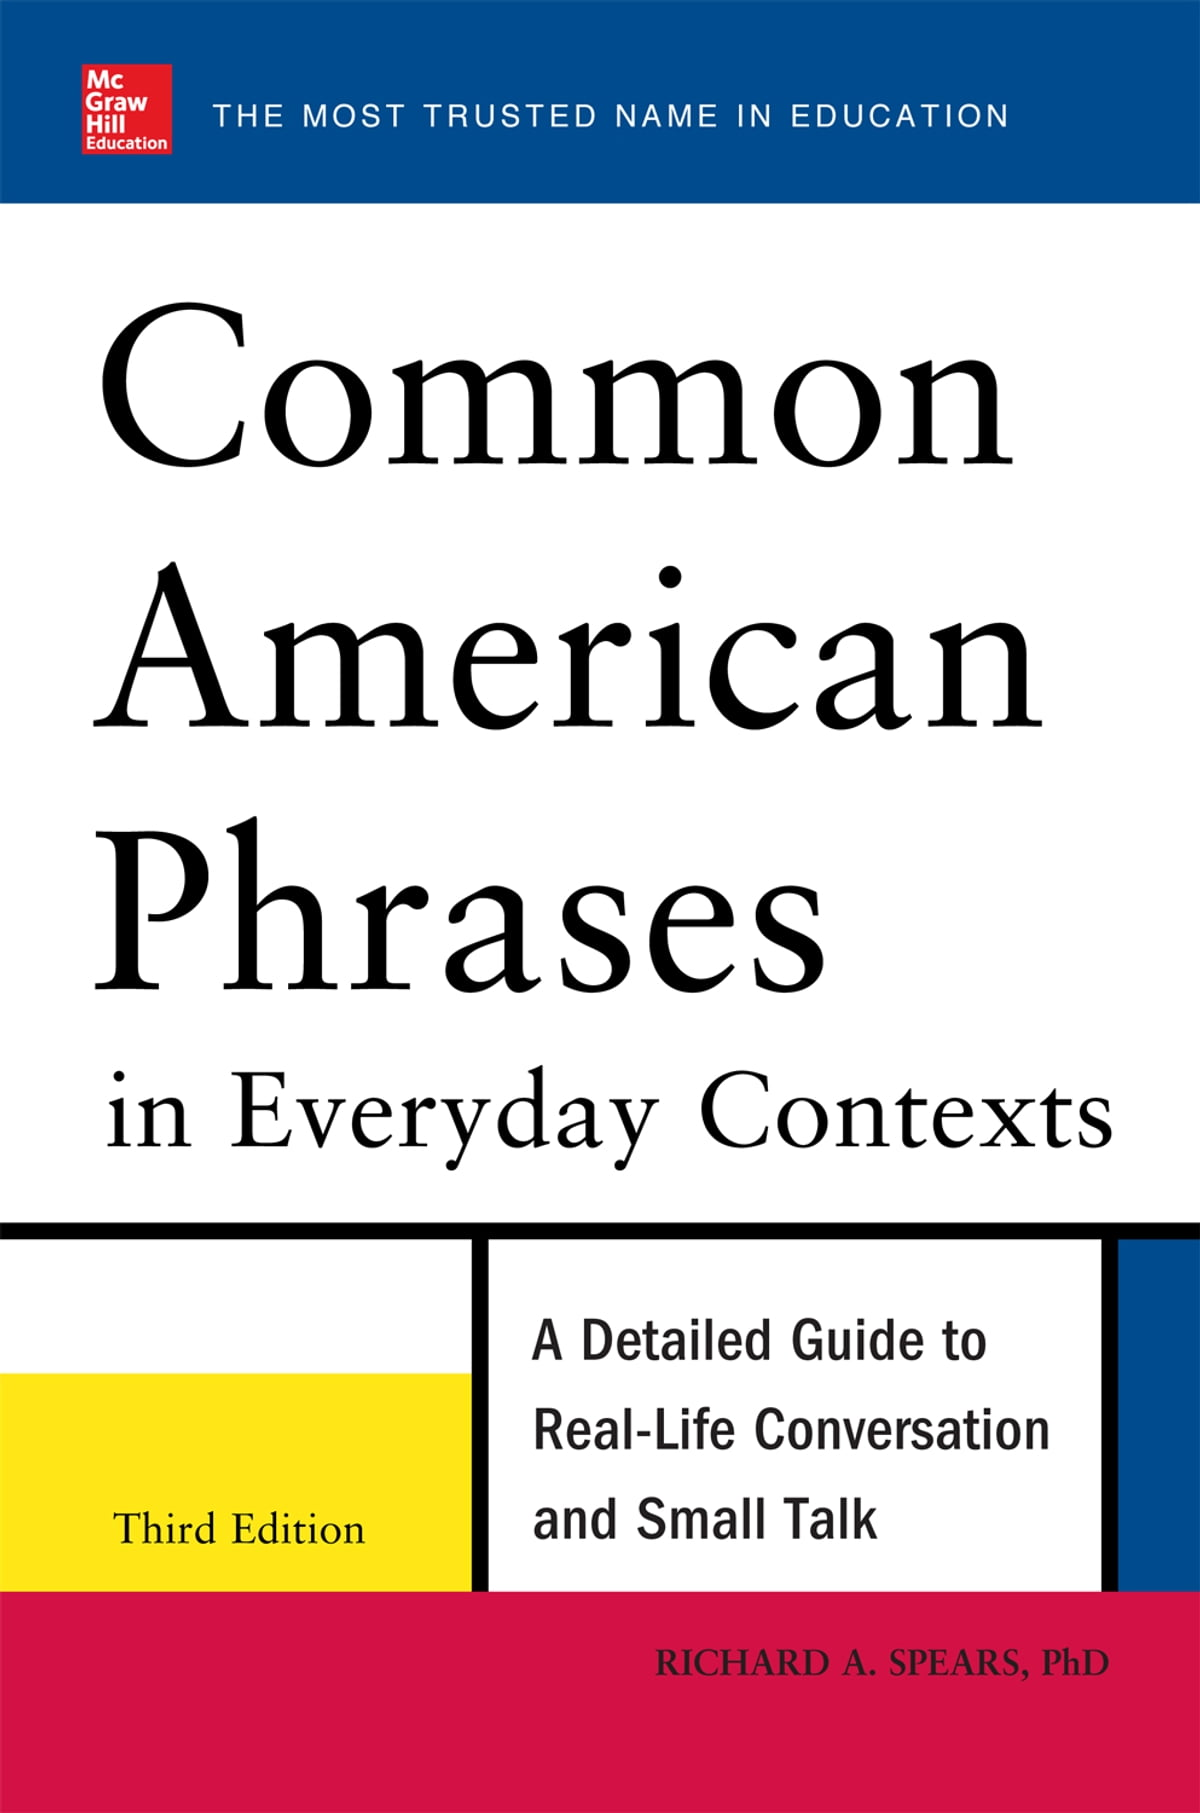 Common American Phrases In Everyday Contexts 3rd Edition Ebook By